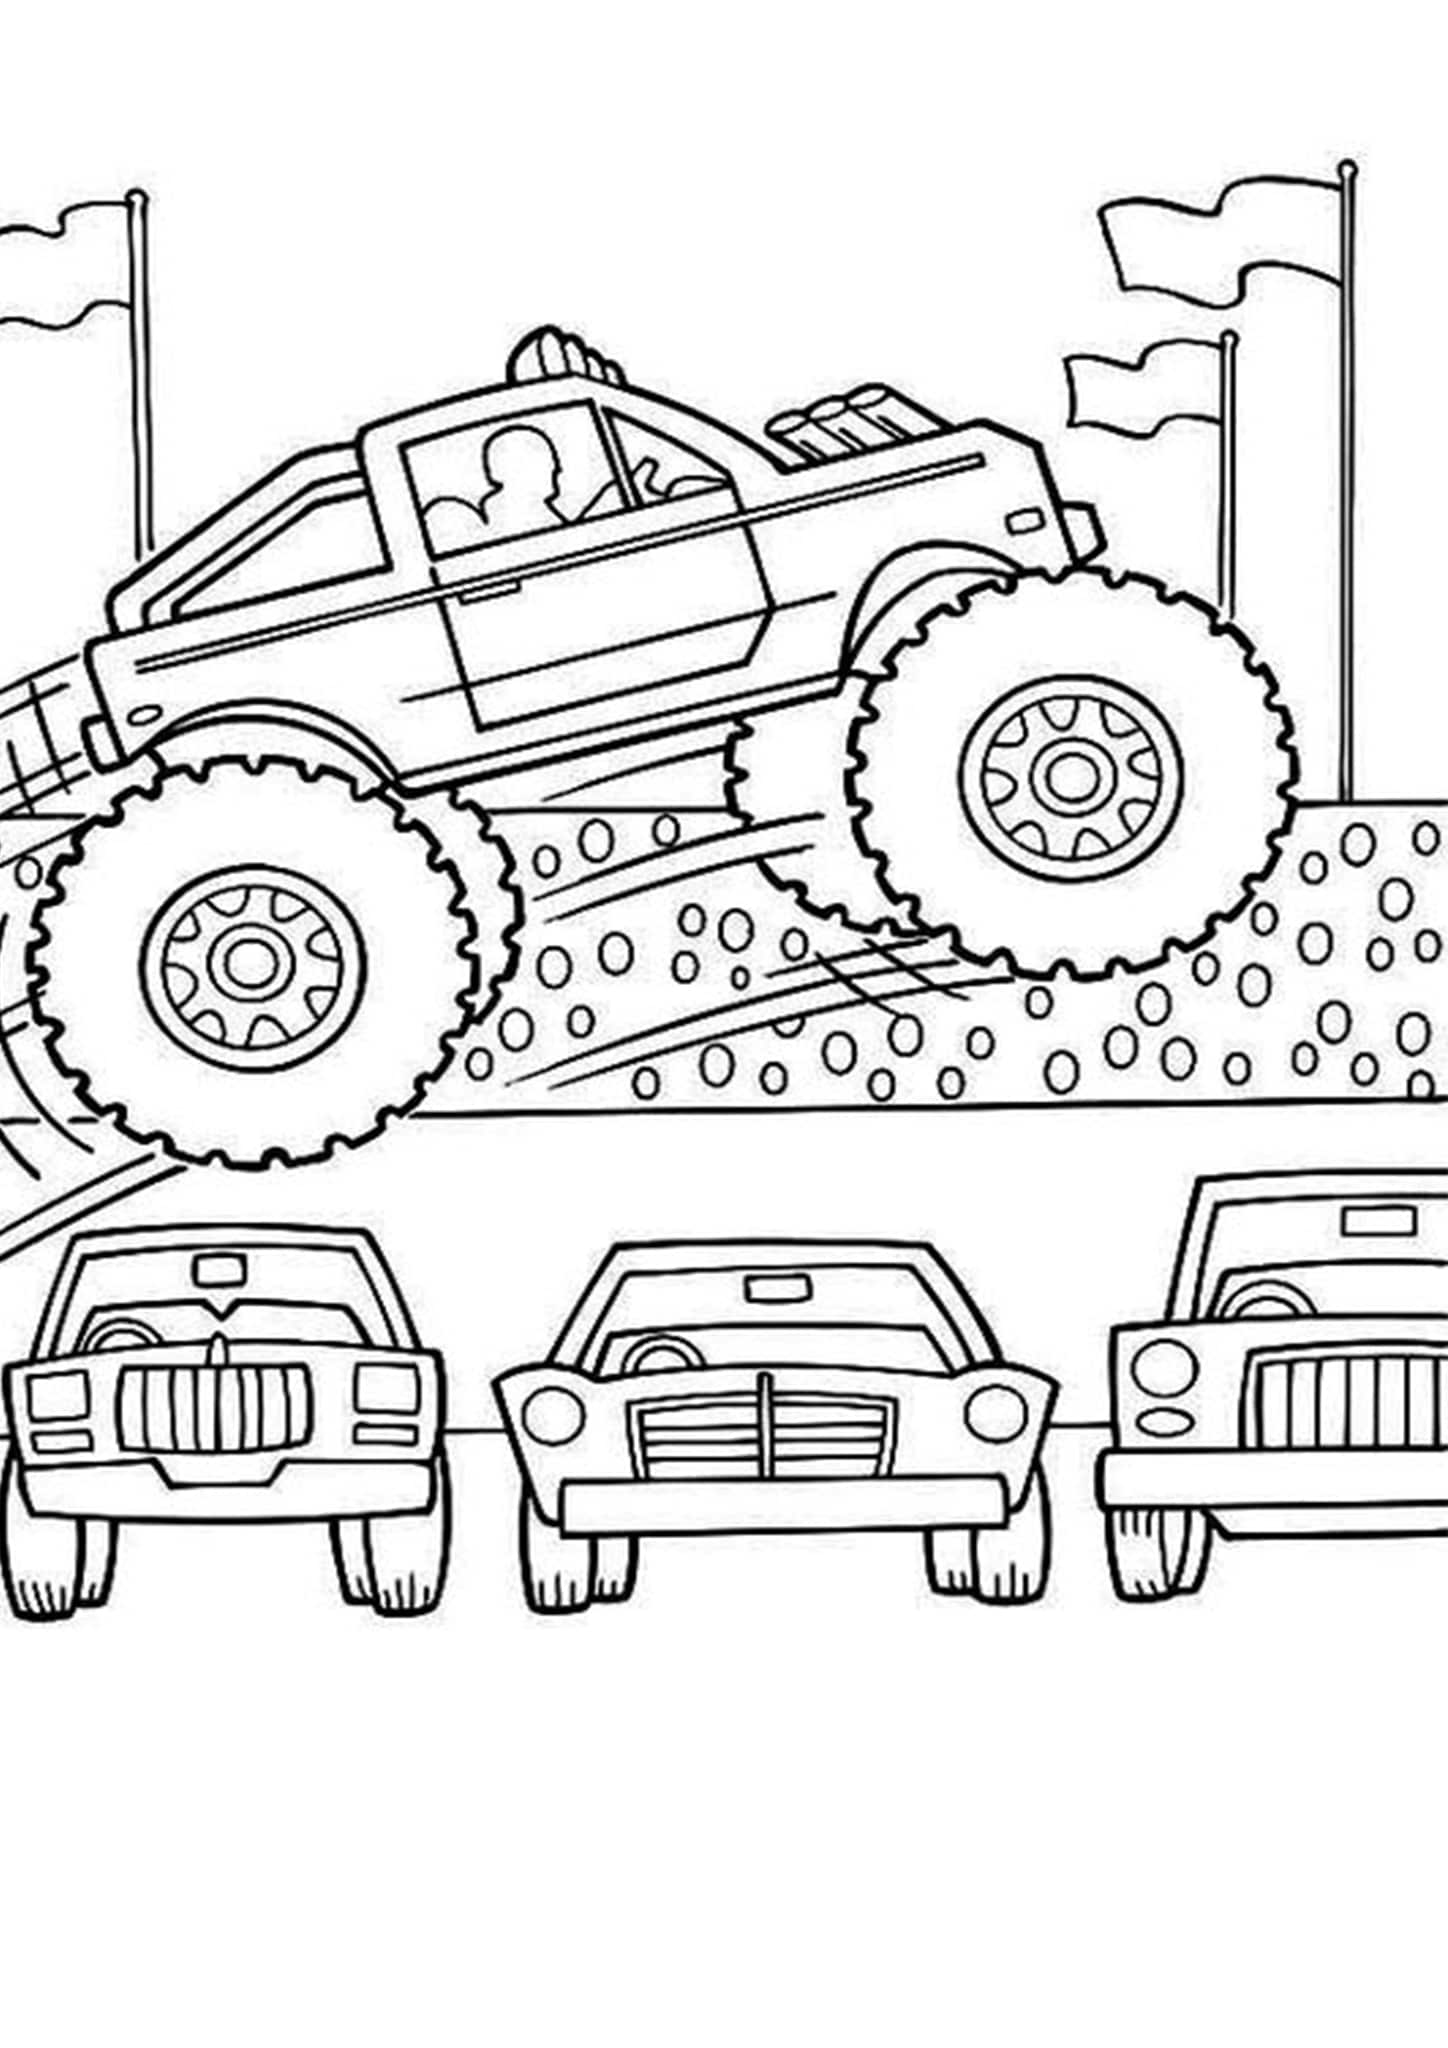 monster truck coloring pages easy easy monster truck coloring page this is monster truck truck coloring monster pages easy